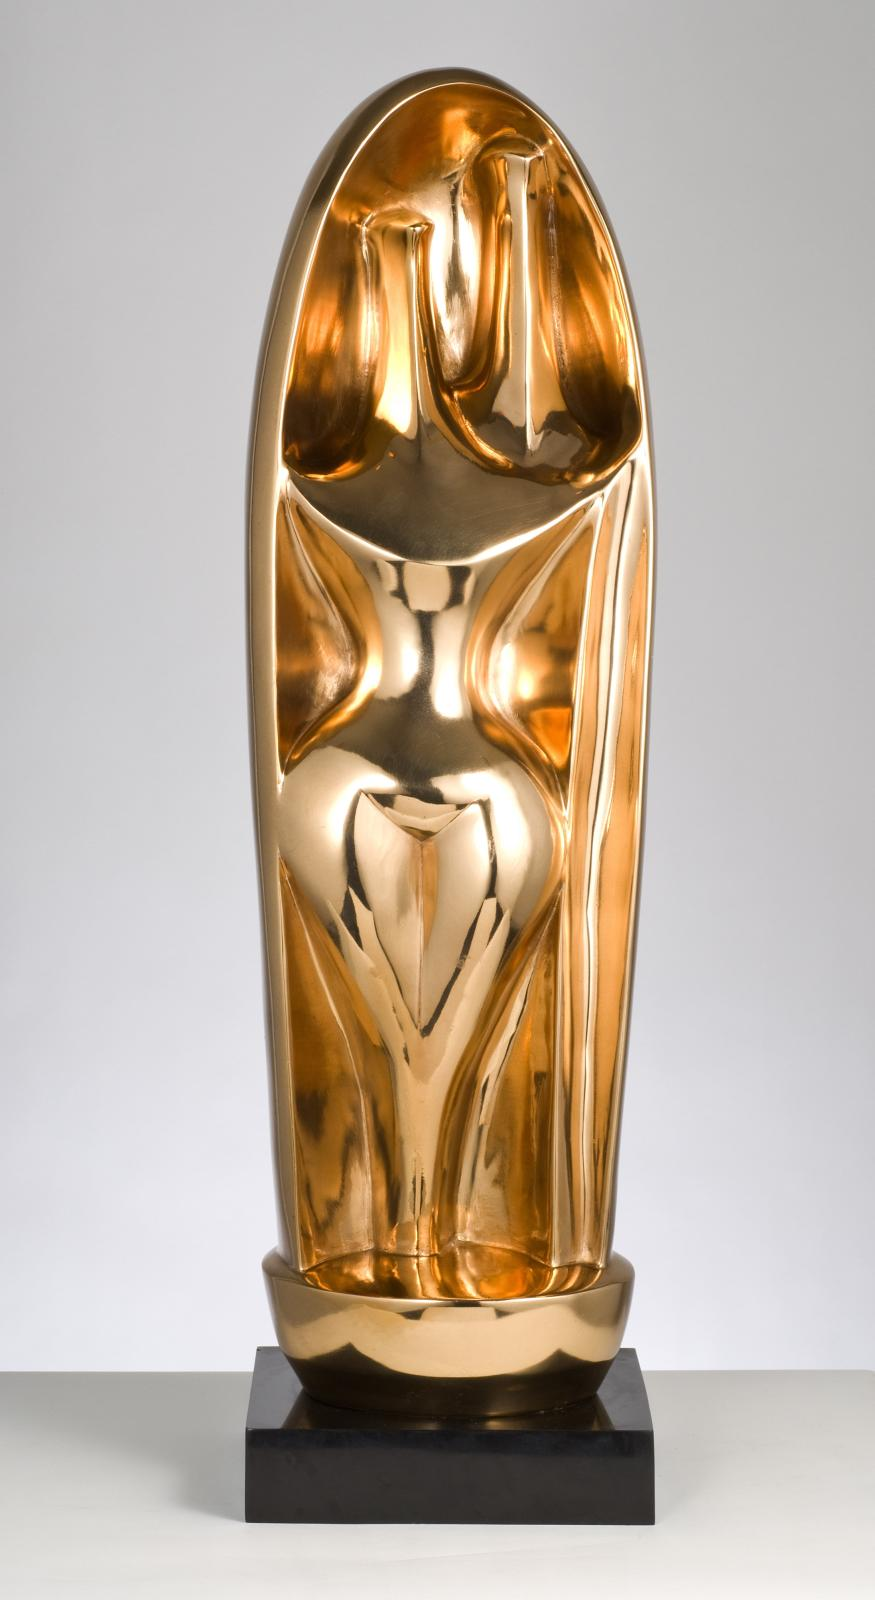 A polished bronze sculpture, two abstracted figures